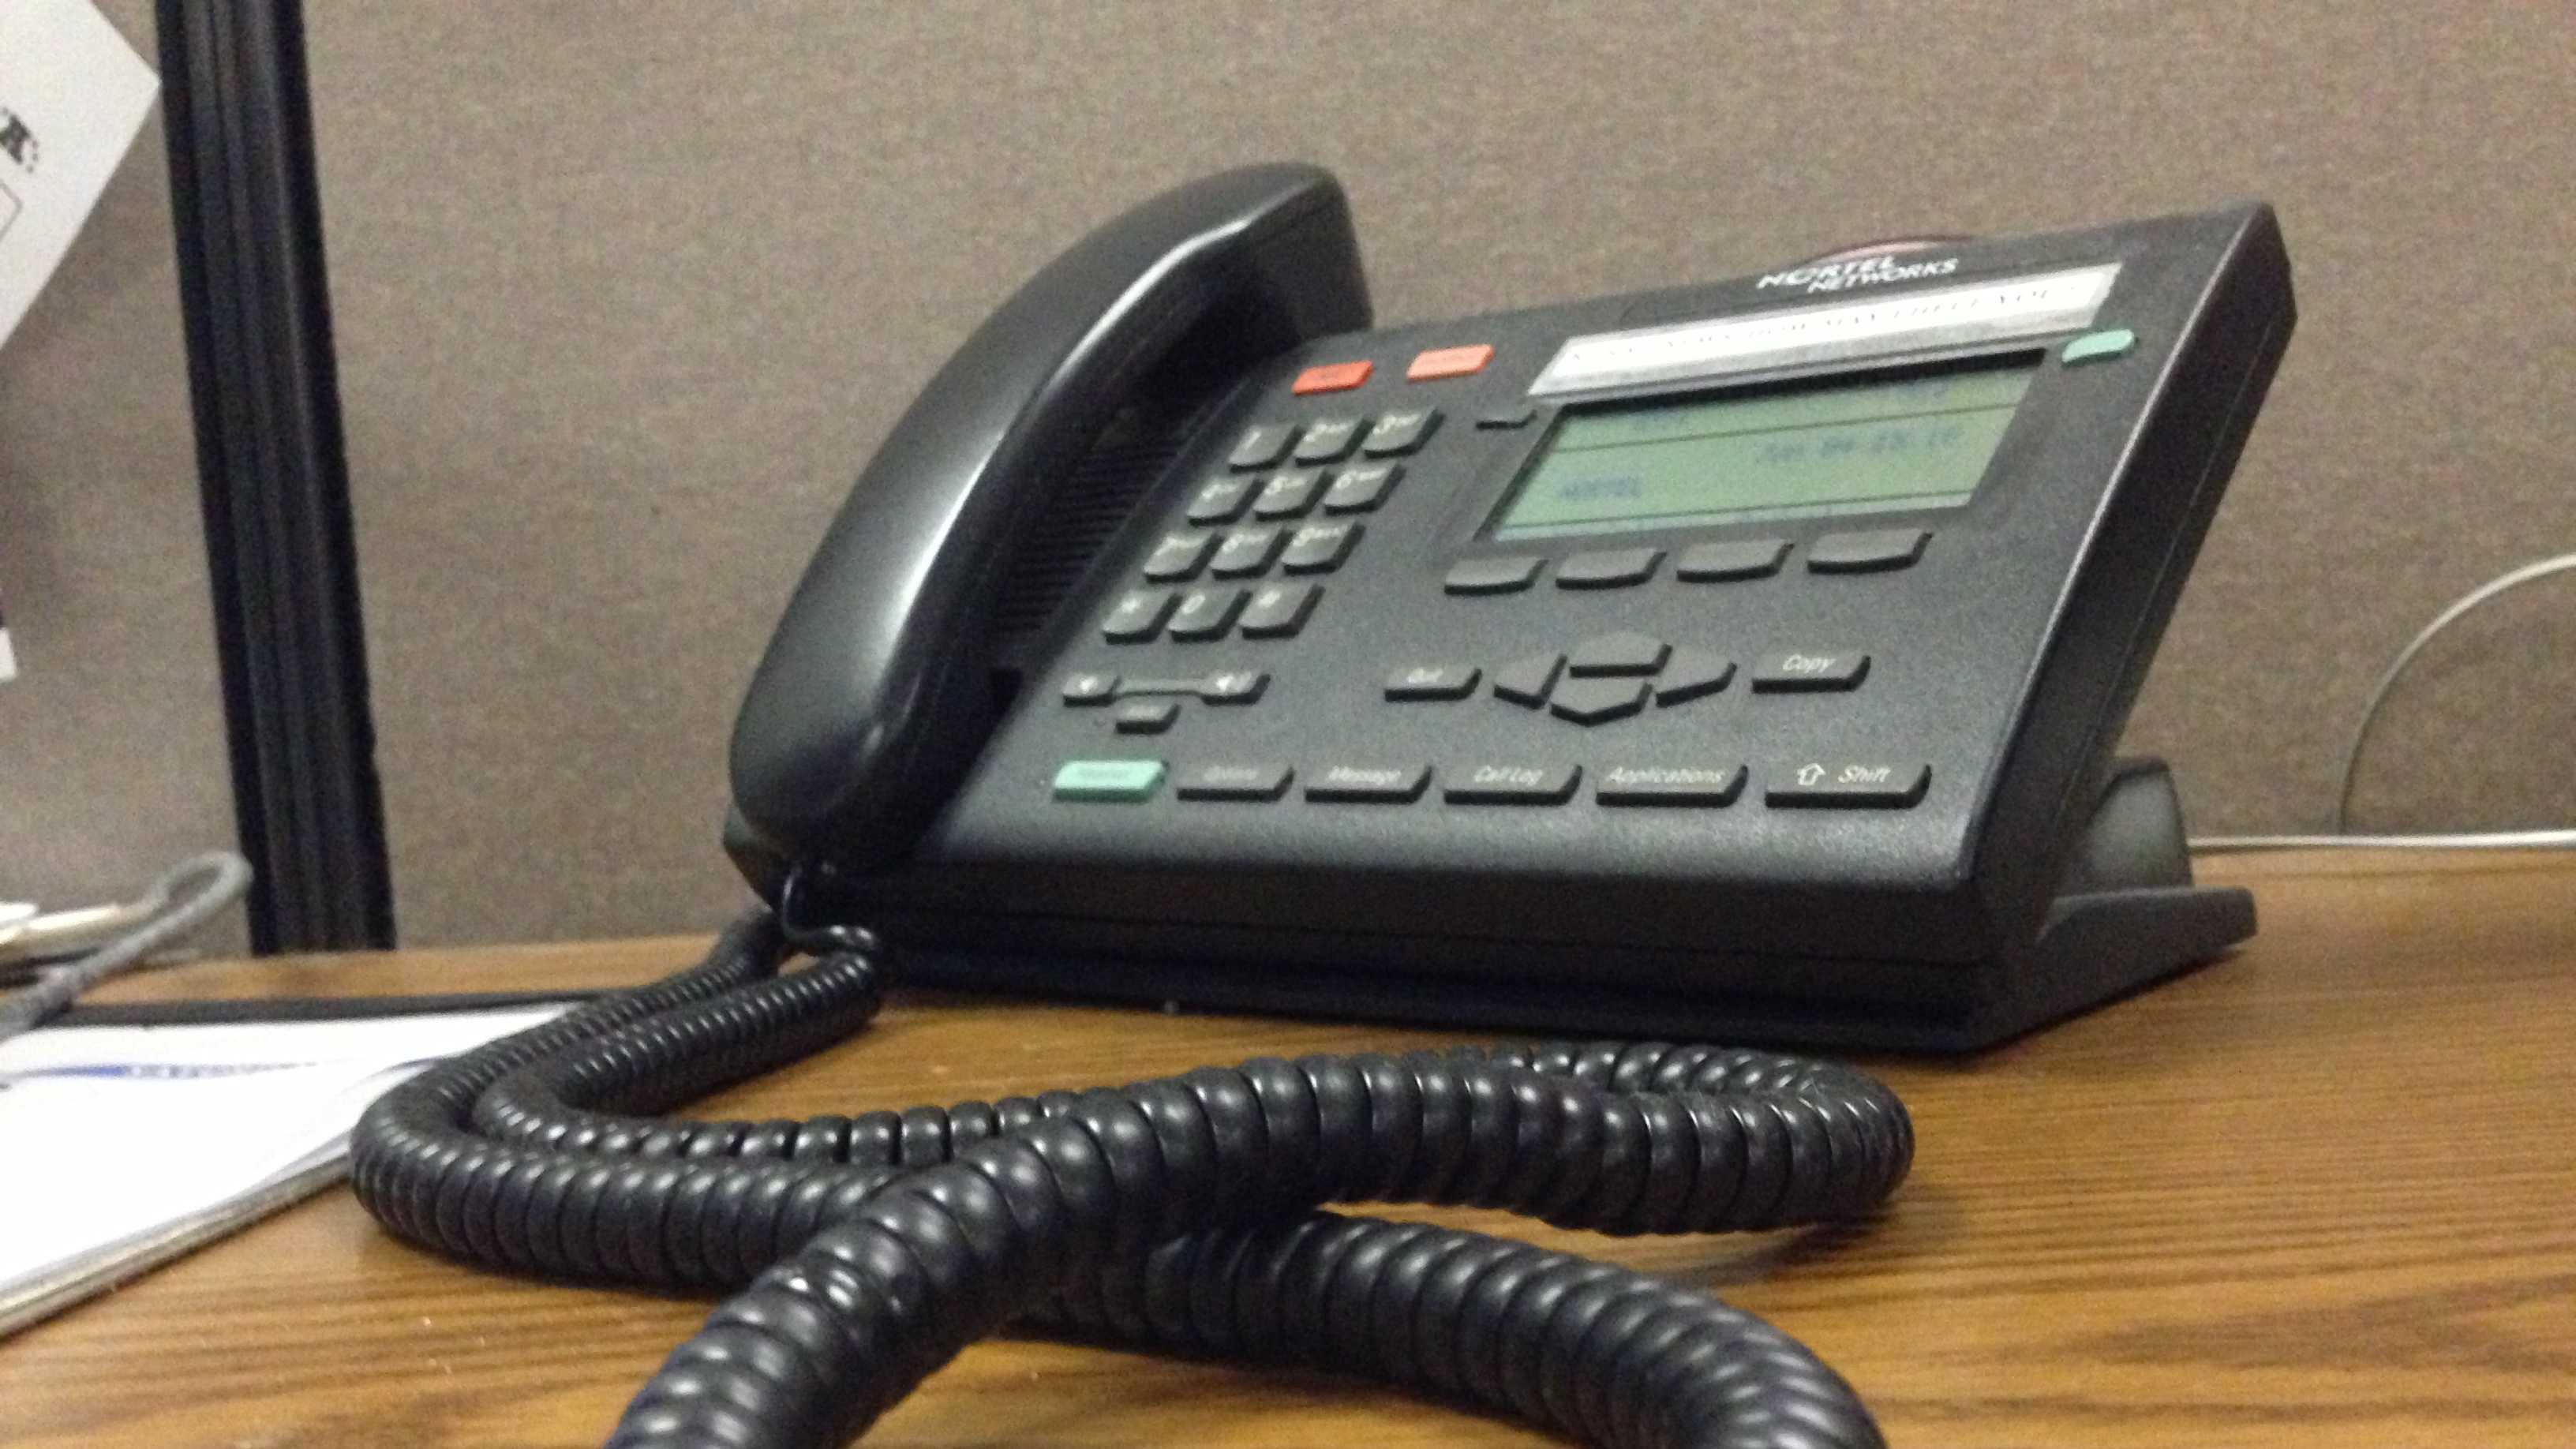 The city of Sacramento is now using a private contractor to manage its whistleblower hotline.